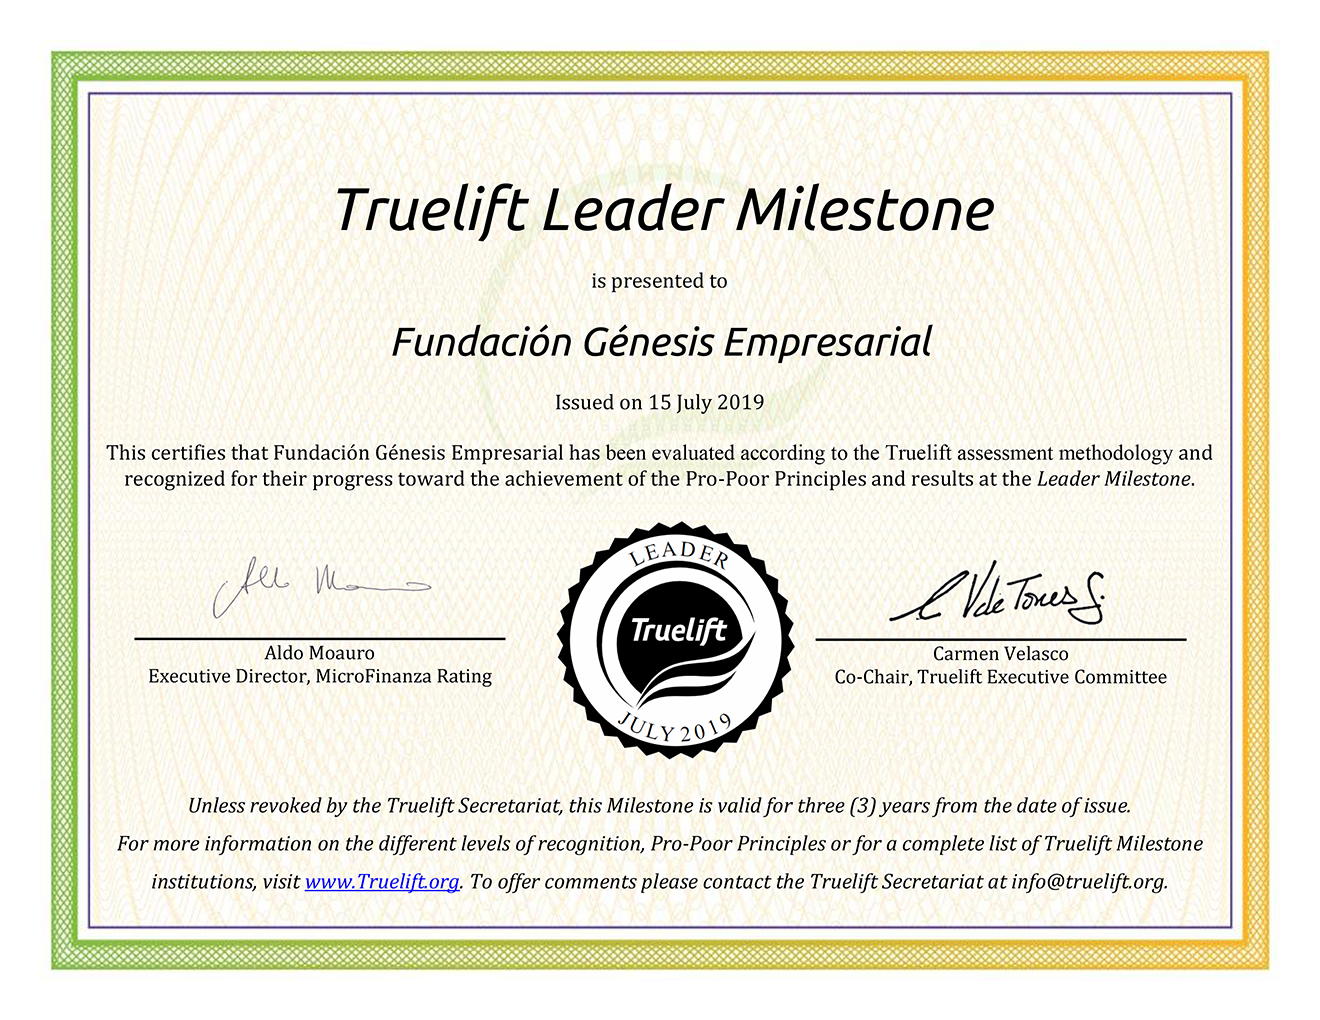 Fundación Génesis Empresarial has been awarded the Truelift Leader Milestone